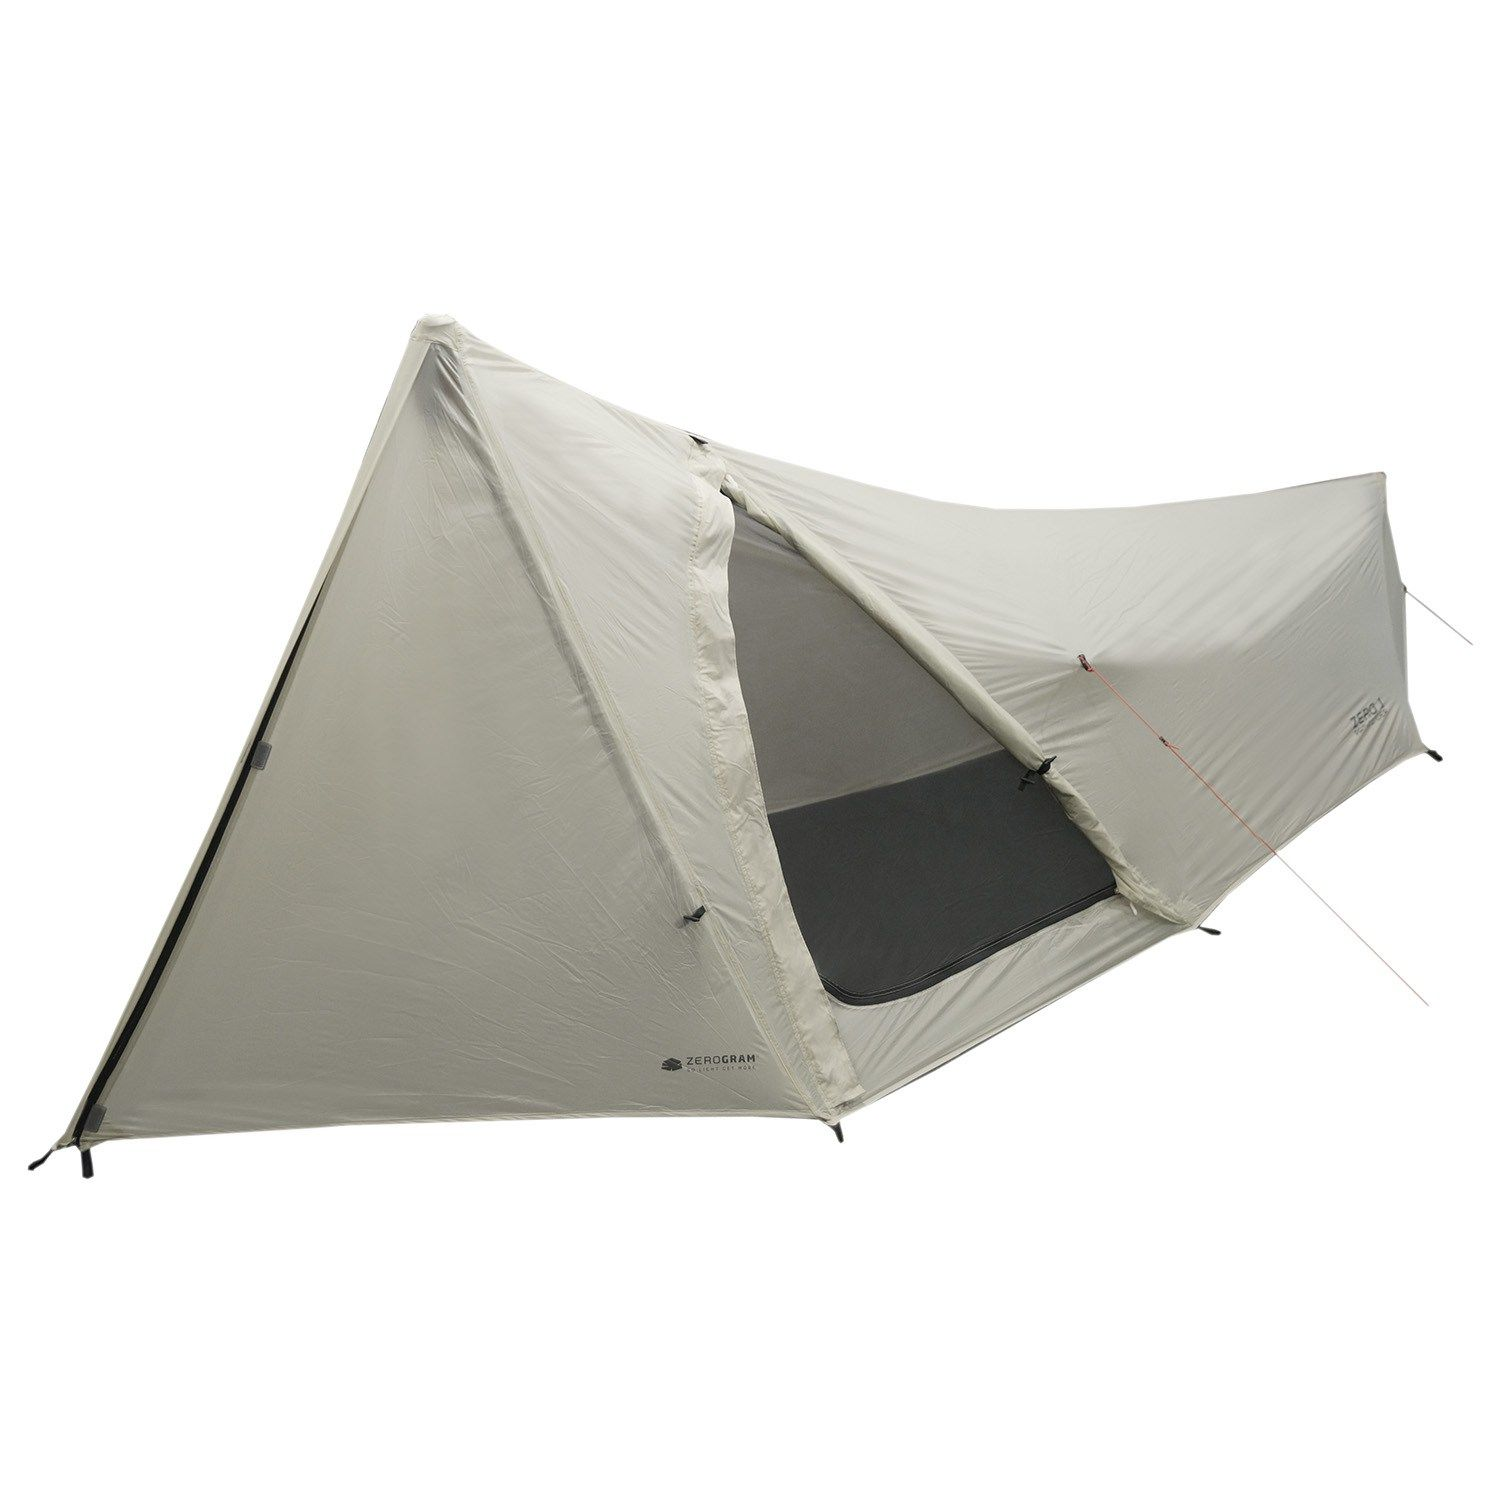 Cover Zerogram ZERO1 Pathfinder Tent u2022 Ultralight single-wall design relies on 1 pair  sc 1 st  Pinterest : pathfinder tarp tent - memphite.com